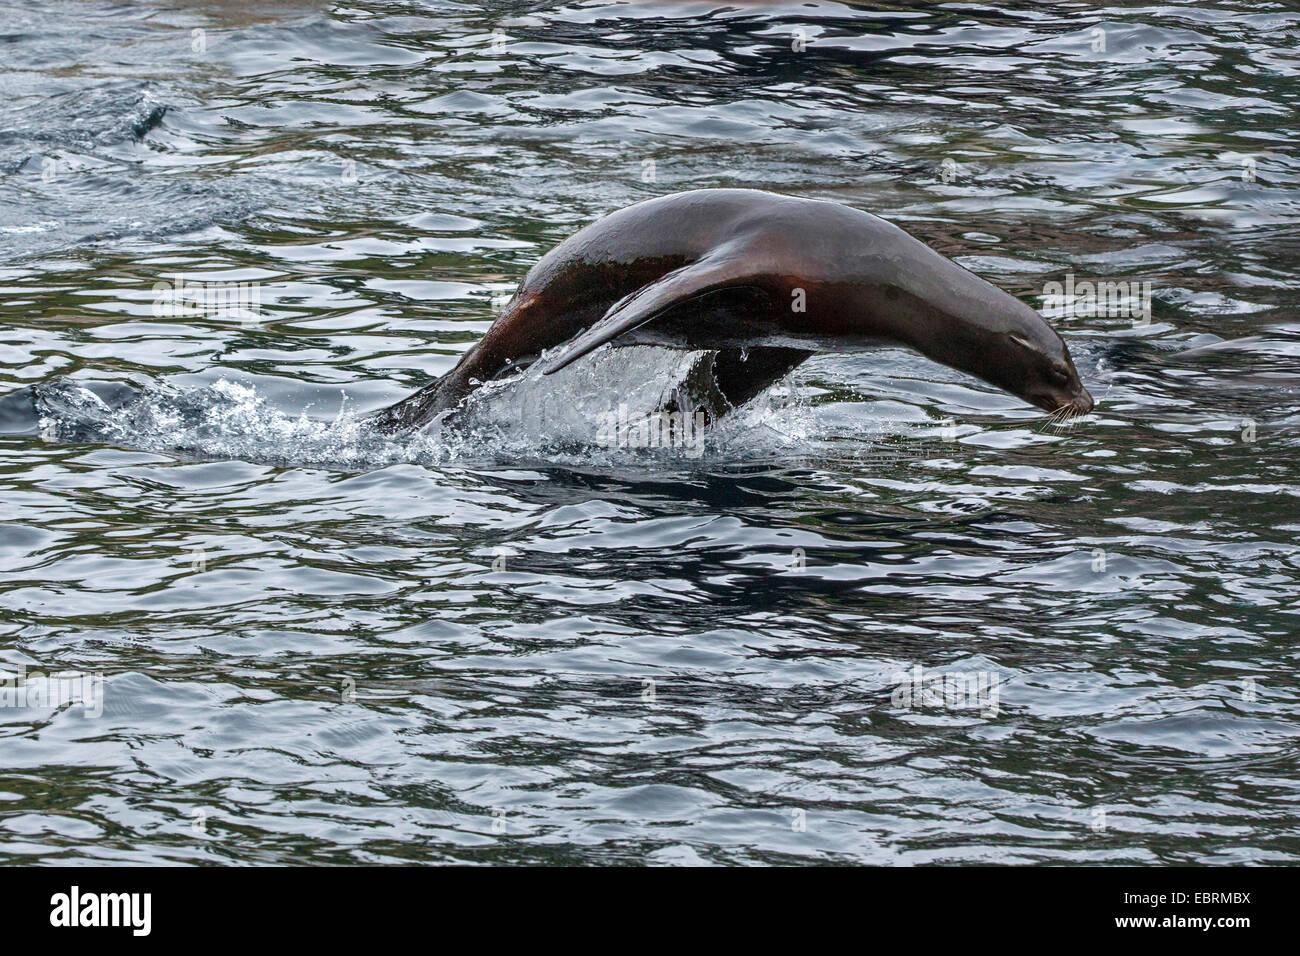 Californian sea lion (Zalophus californianus), jumps out of the water - Stock Image